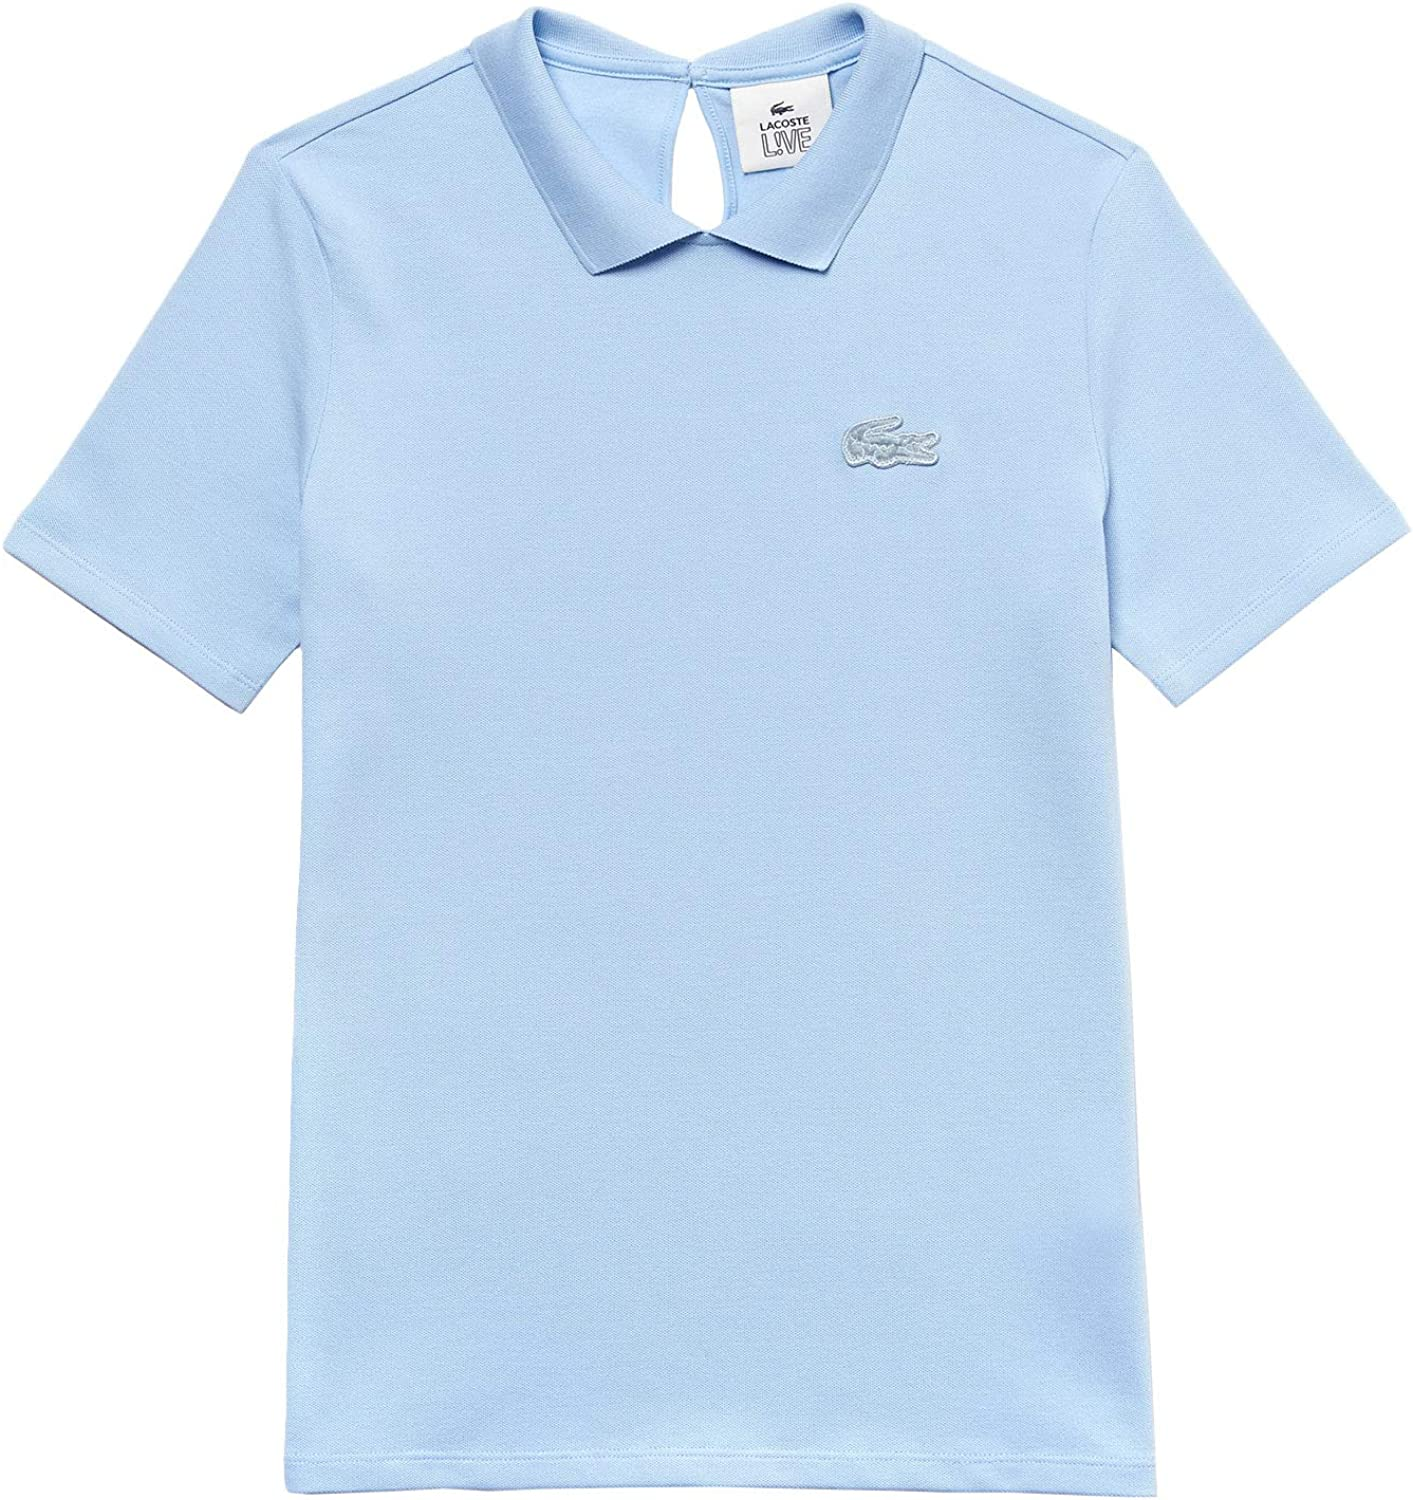 Max 53% OFF Lacoste Live - Polo Shipping included Sleeve PF262700G5J Women Short